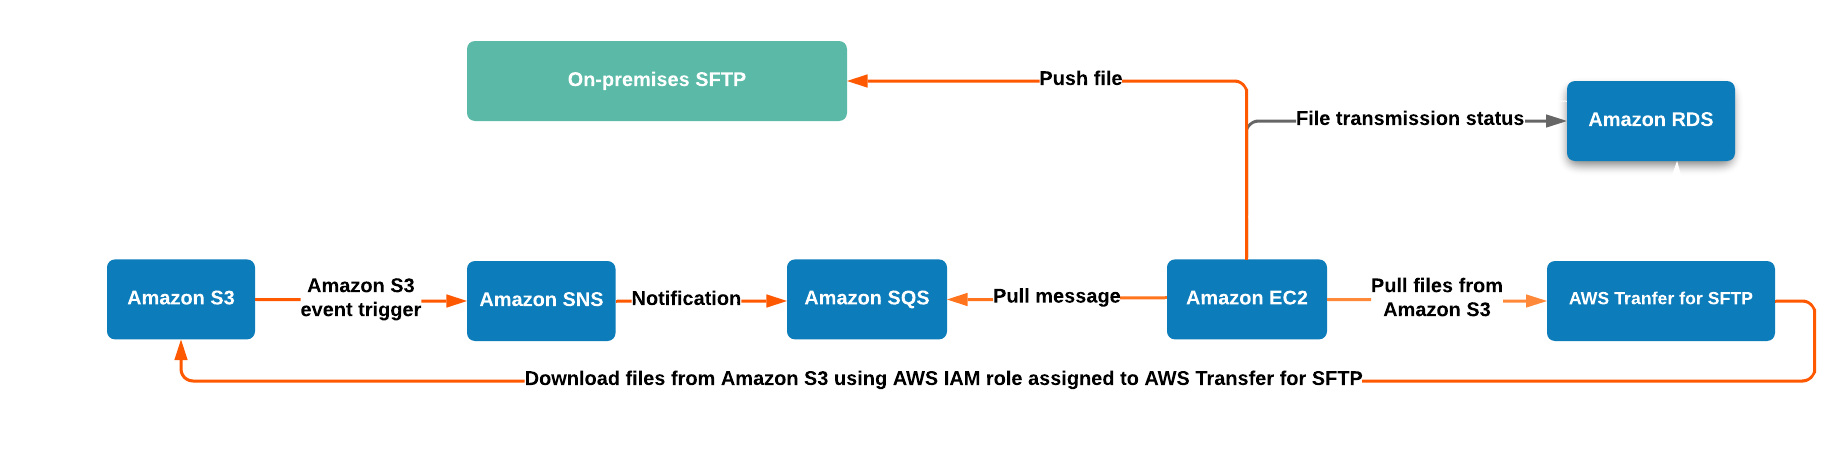 Data flow for outbound data to on-premises SFTP server from Amazon S3